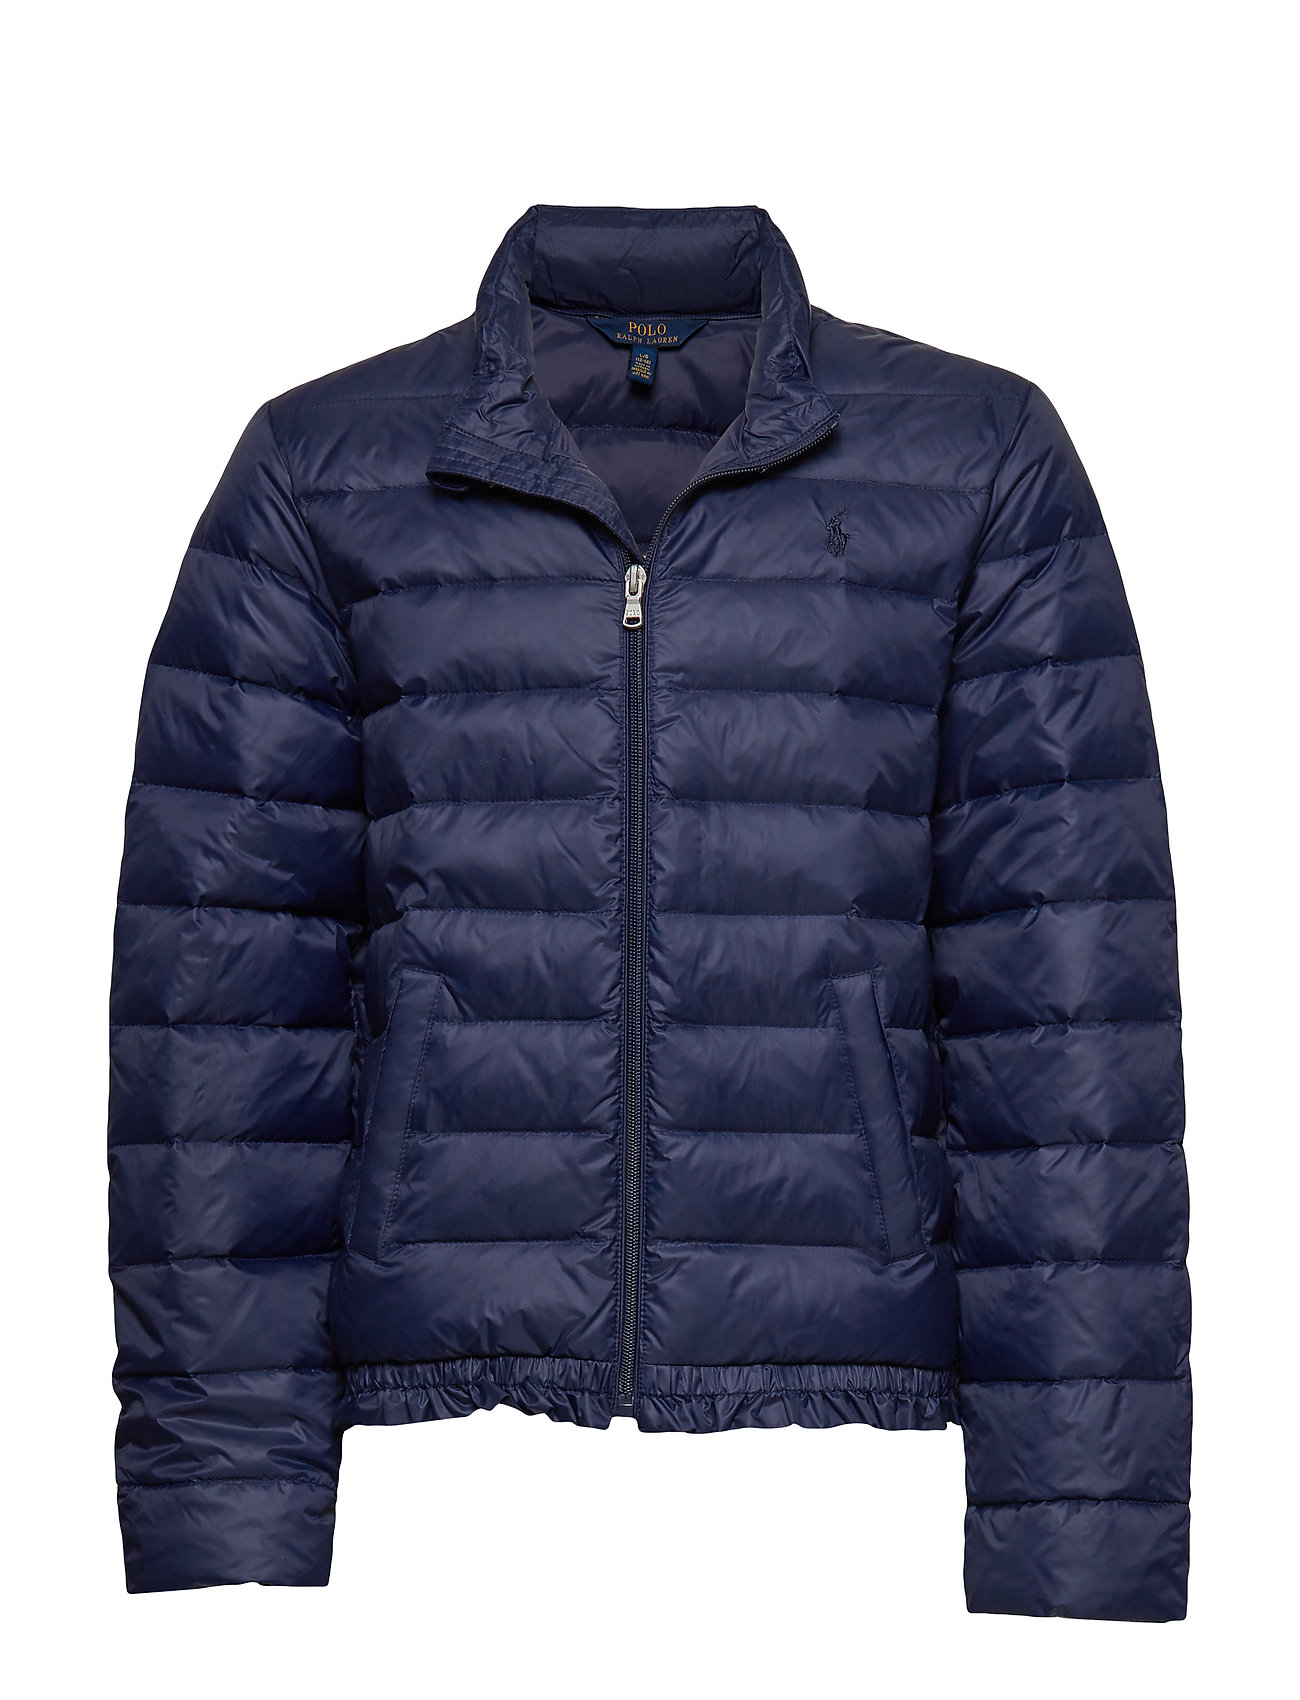 Ralph Lauren Kids Ruffled Quilted Down Jacket - FRENCH NAVY